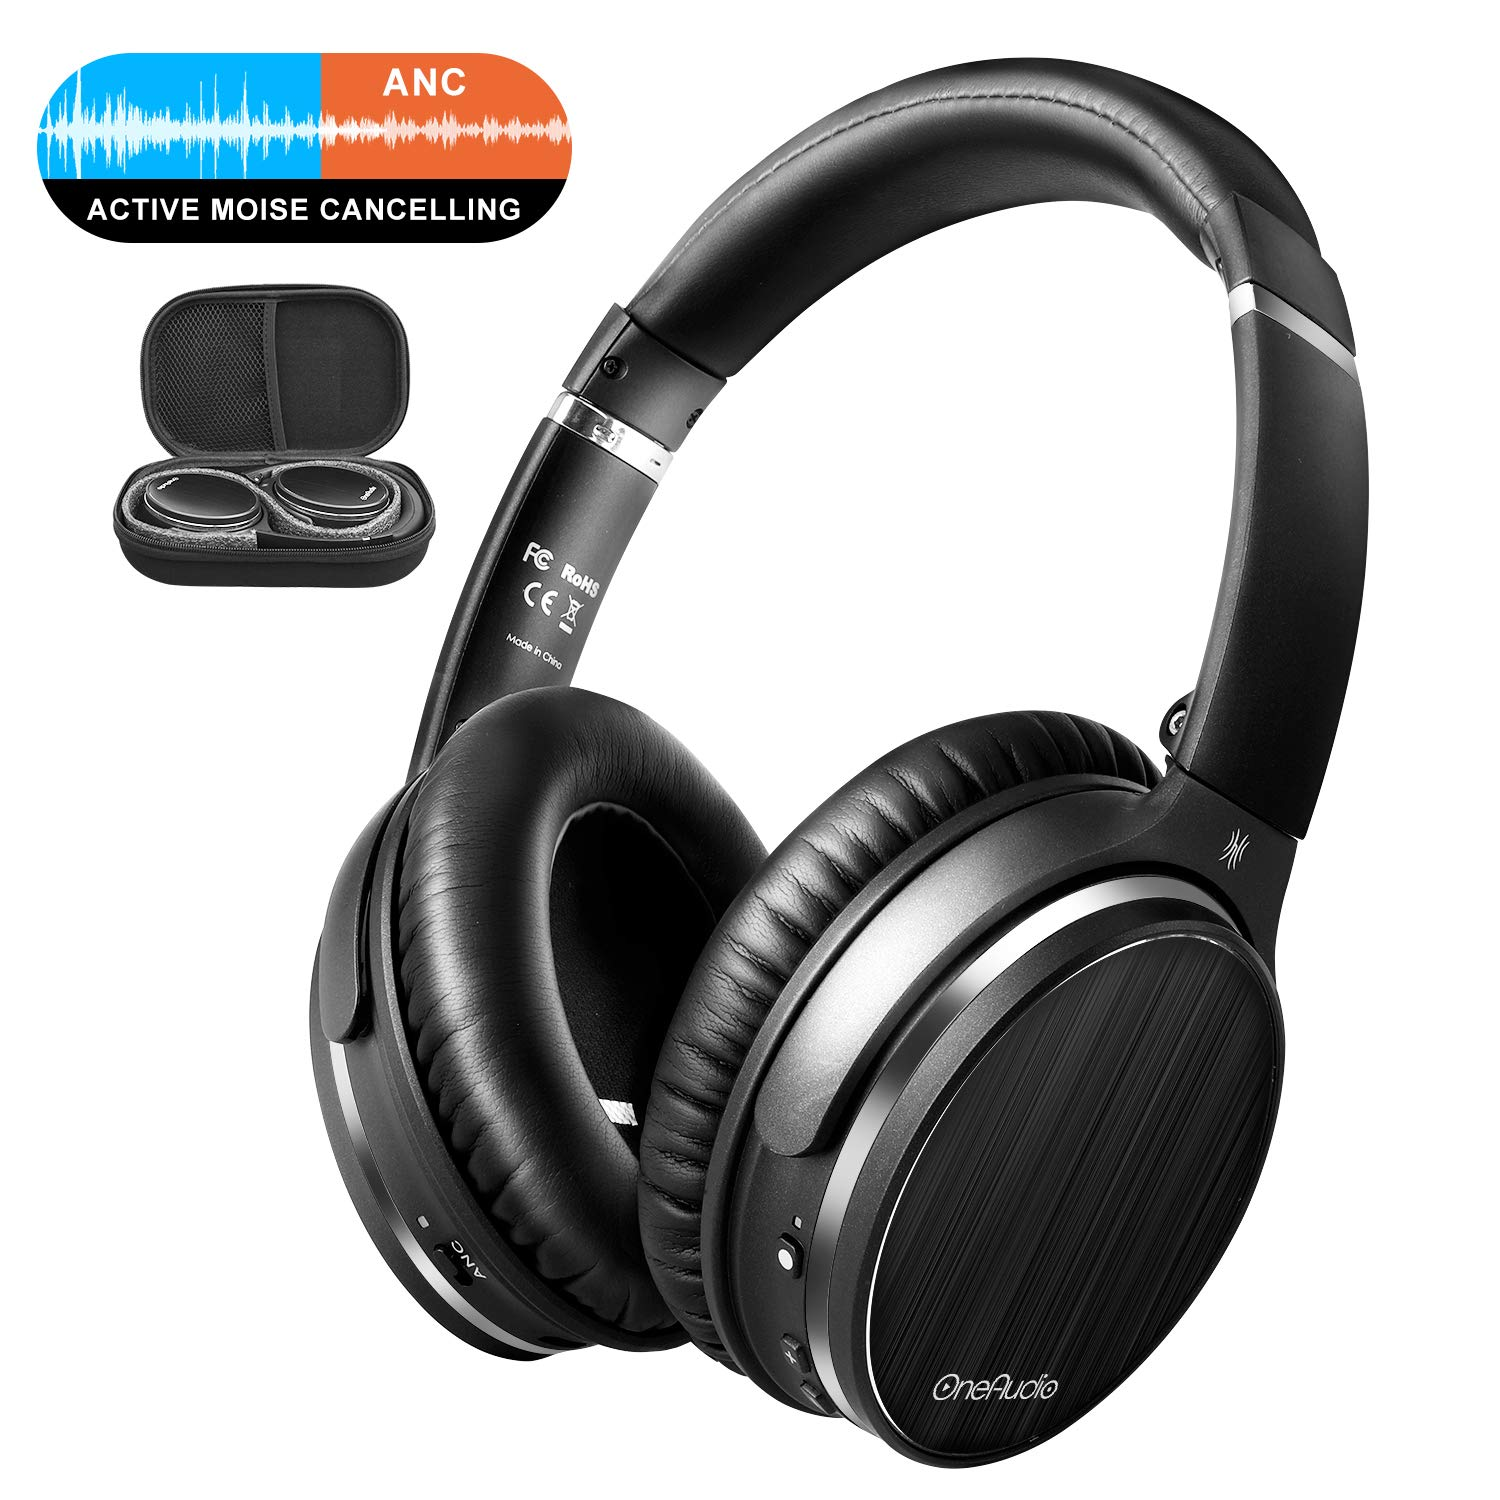 OneOdio Active Noise Canceling Bluetooth 4.1 Headphones with Mic, Wireless Wired Comfortable Foldable Stereo ANC Over Ear Headset for Airplane Travel Work TV PC Phone Computer OneOdio USA A3